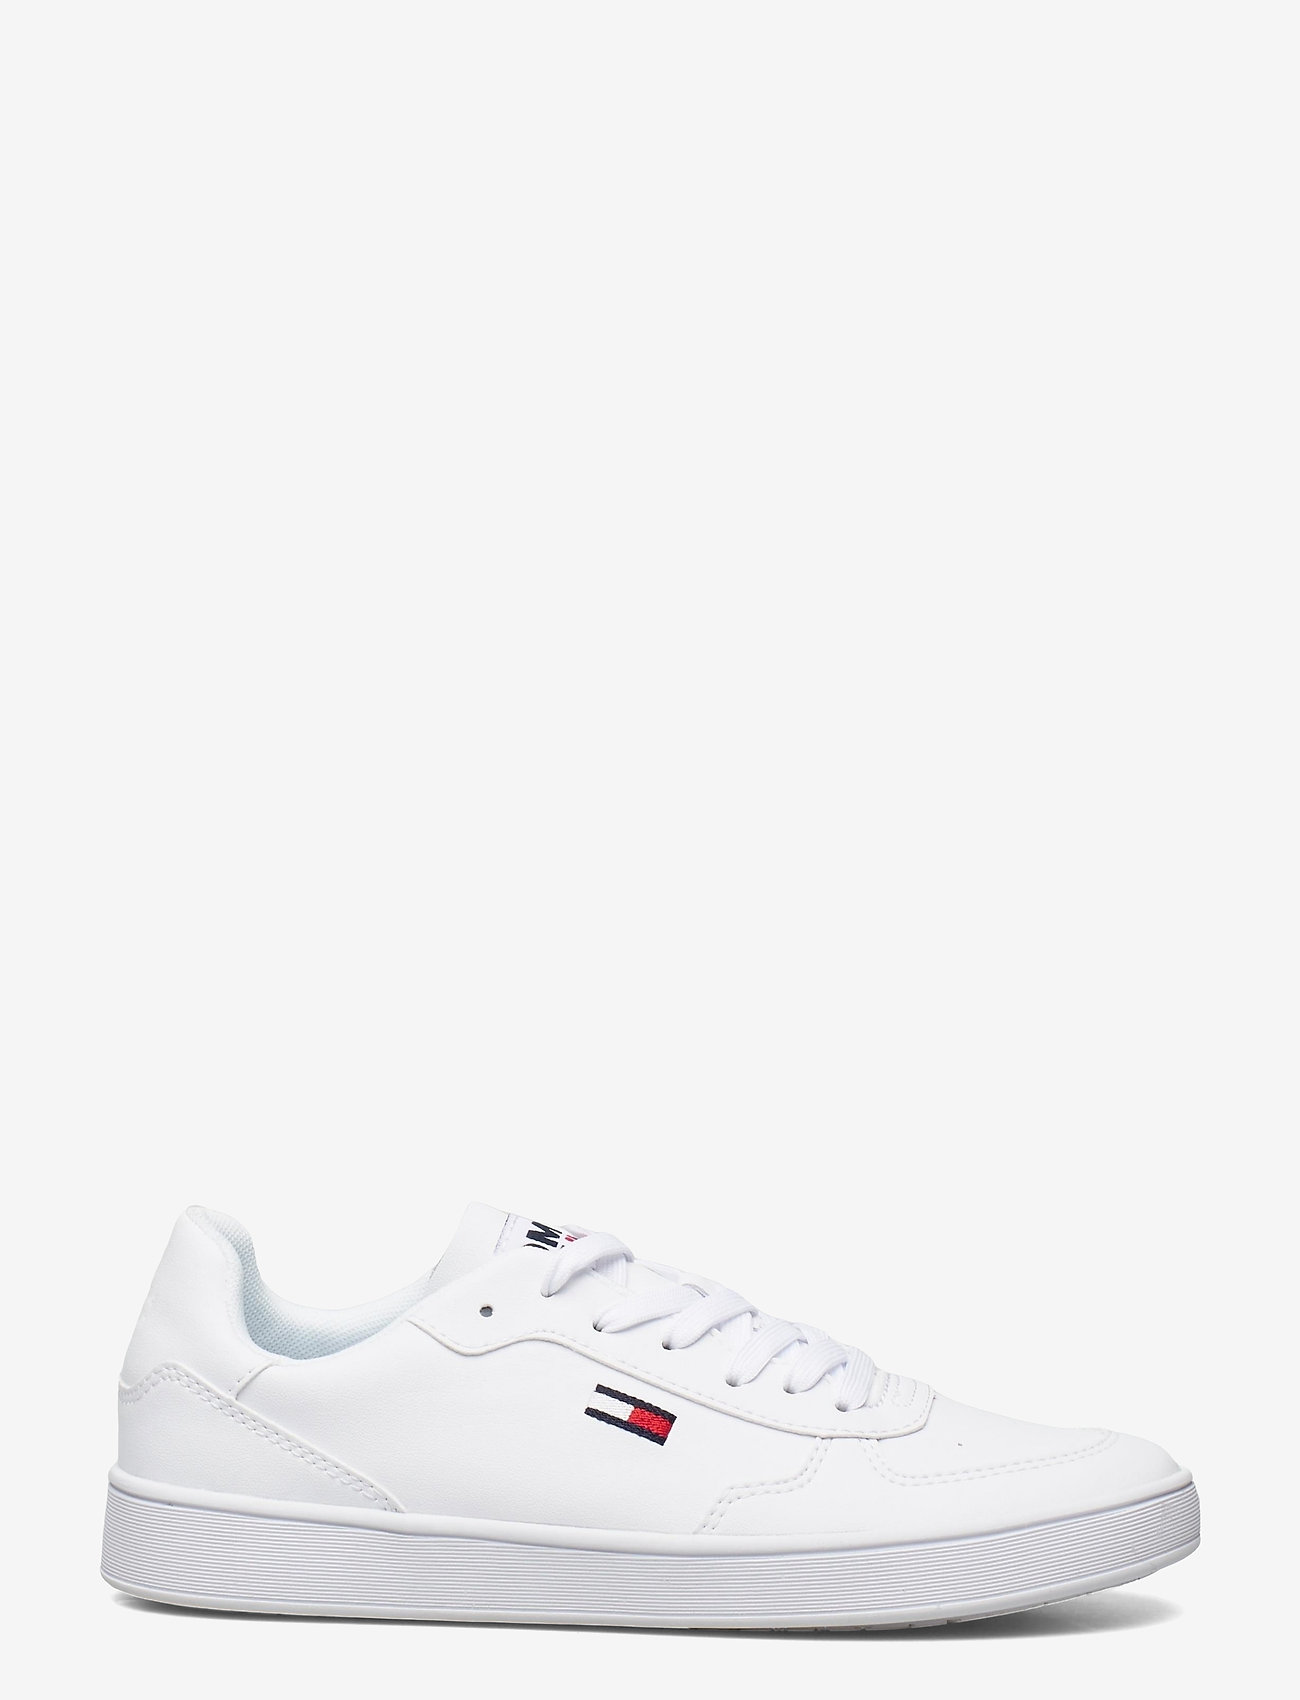 Tommy Hilfiger - TOMMY JEANS CUPSOLE SNEAKER - low top sneakers - white - 1